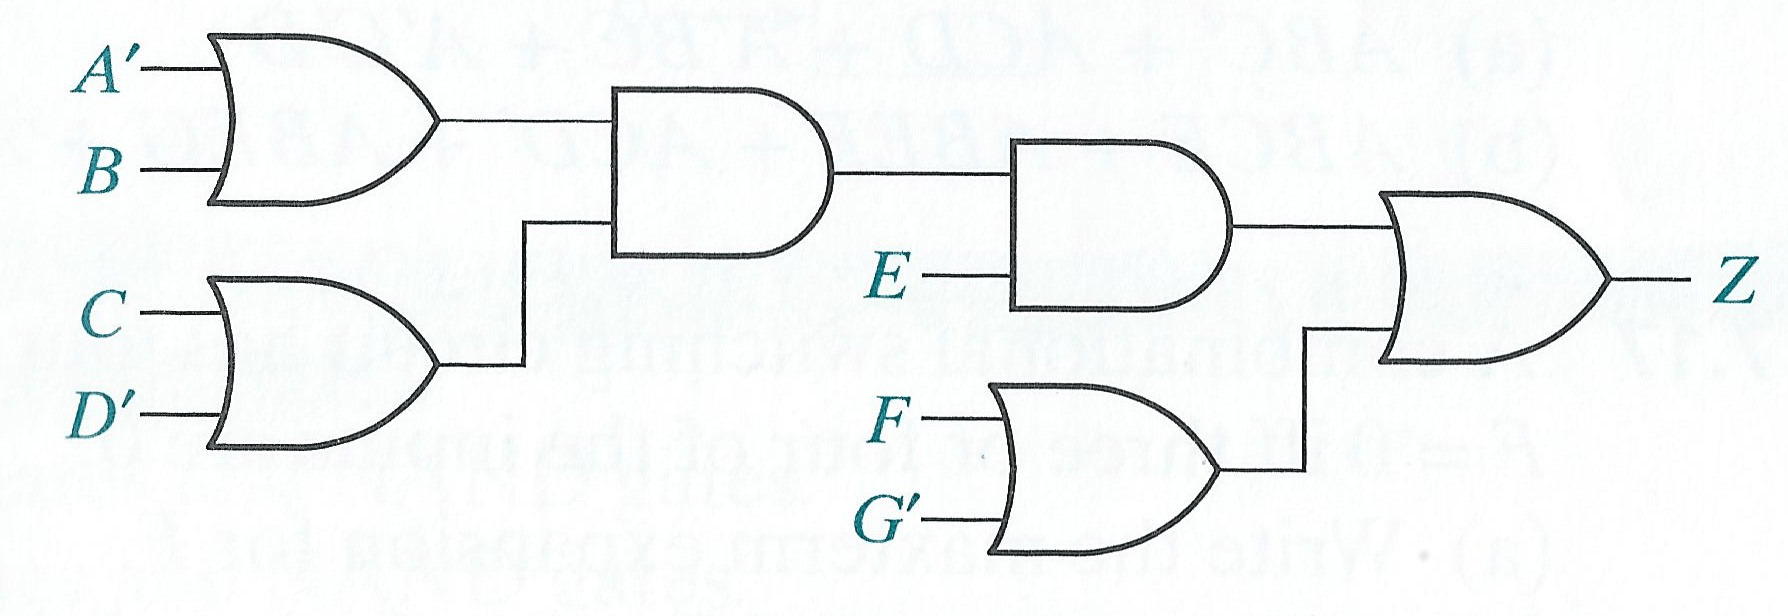 Solved: 1. Convert The Following Circuit To All NAND Gates